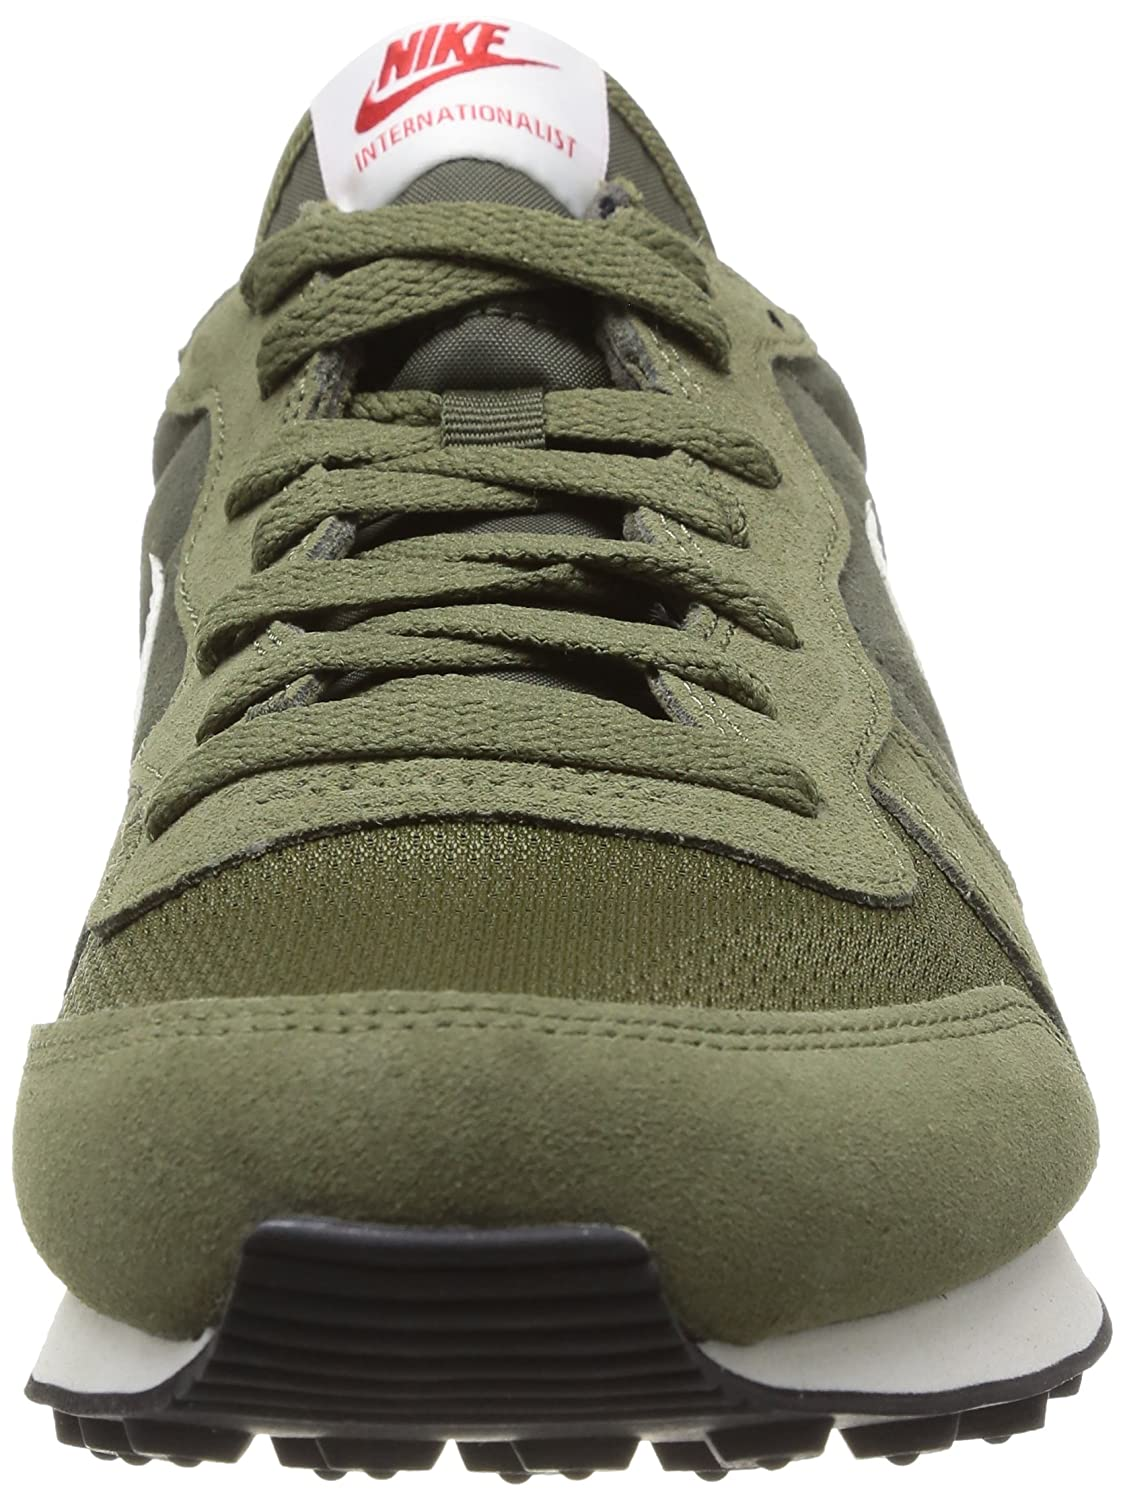 super cute 579bf 3dd0f Nike Internationalist Leather - Cargo Khaki/Sail-Medium Olive, 11 D US:  Amazon.ca: Shoes & Handbags